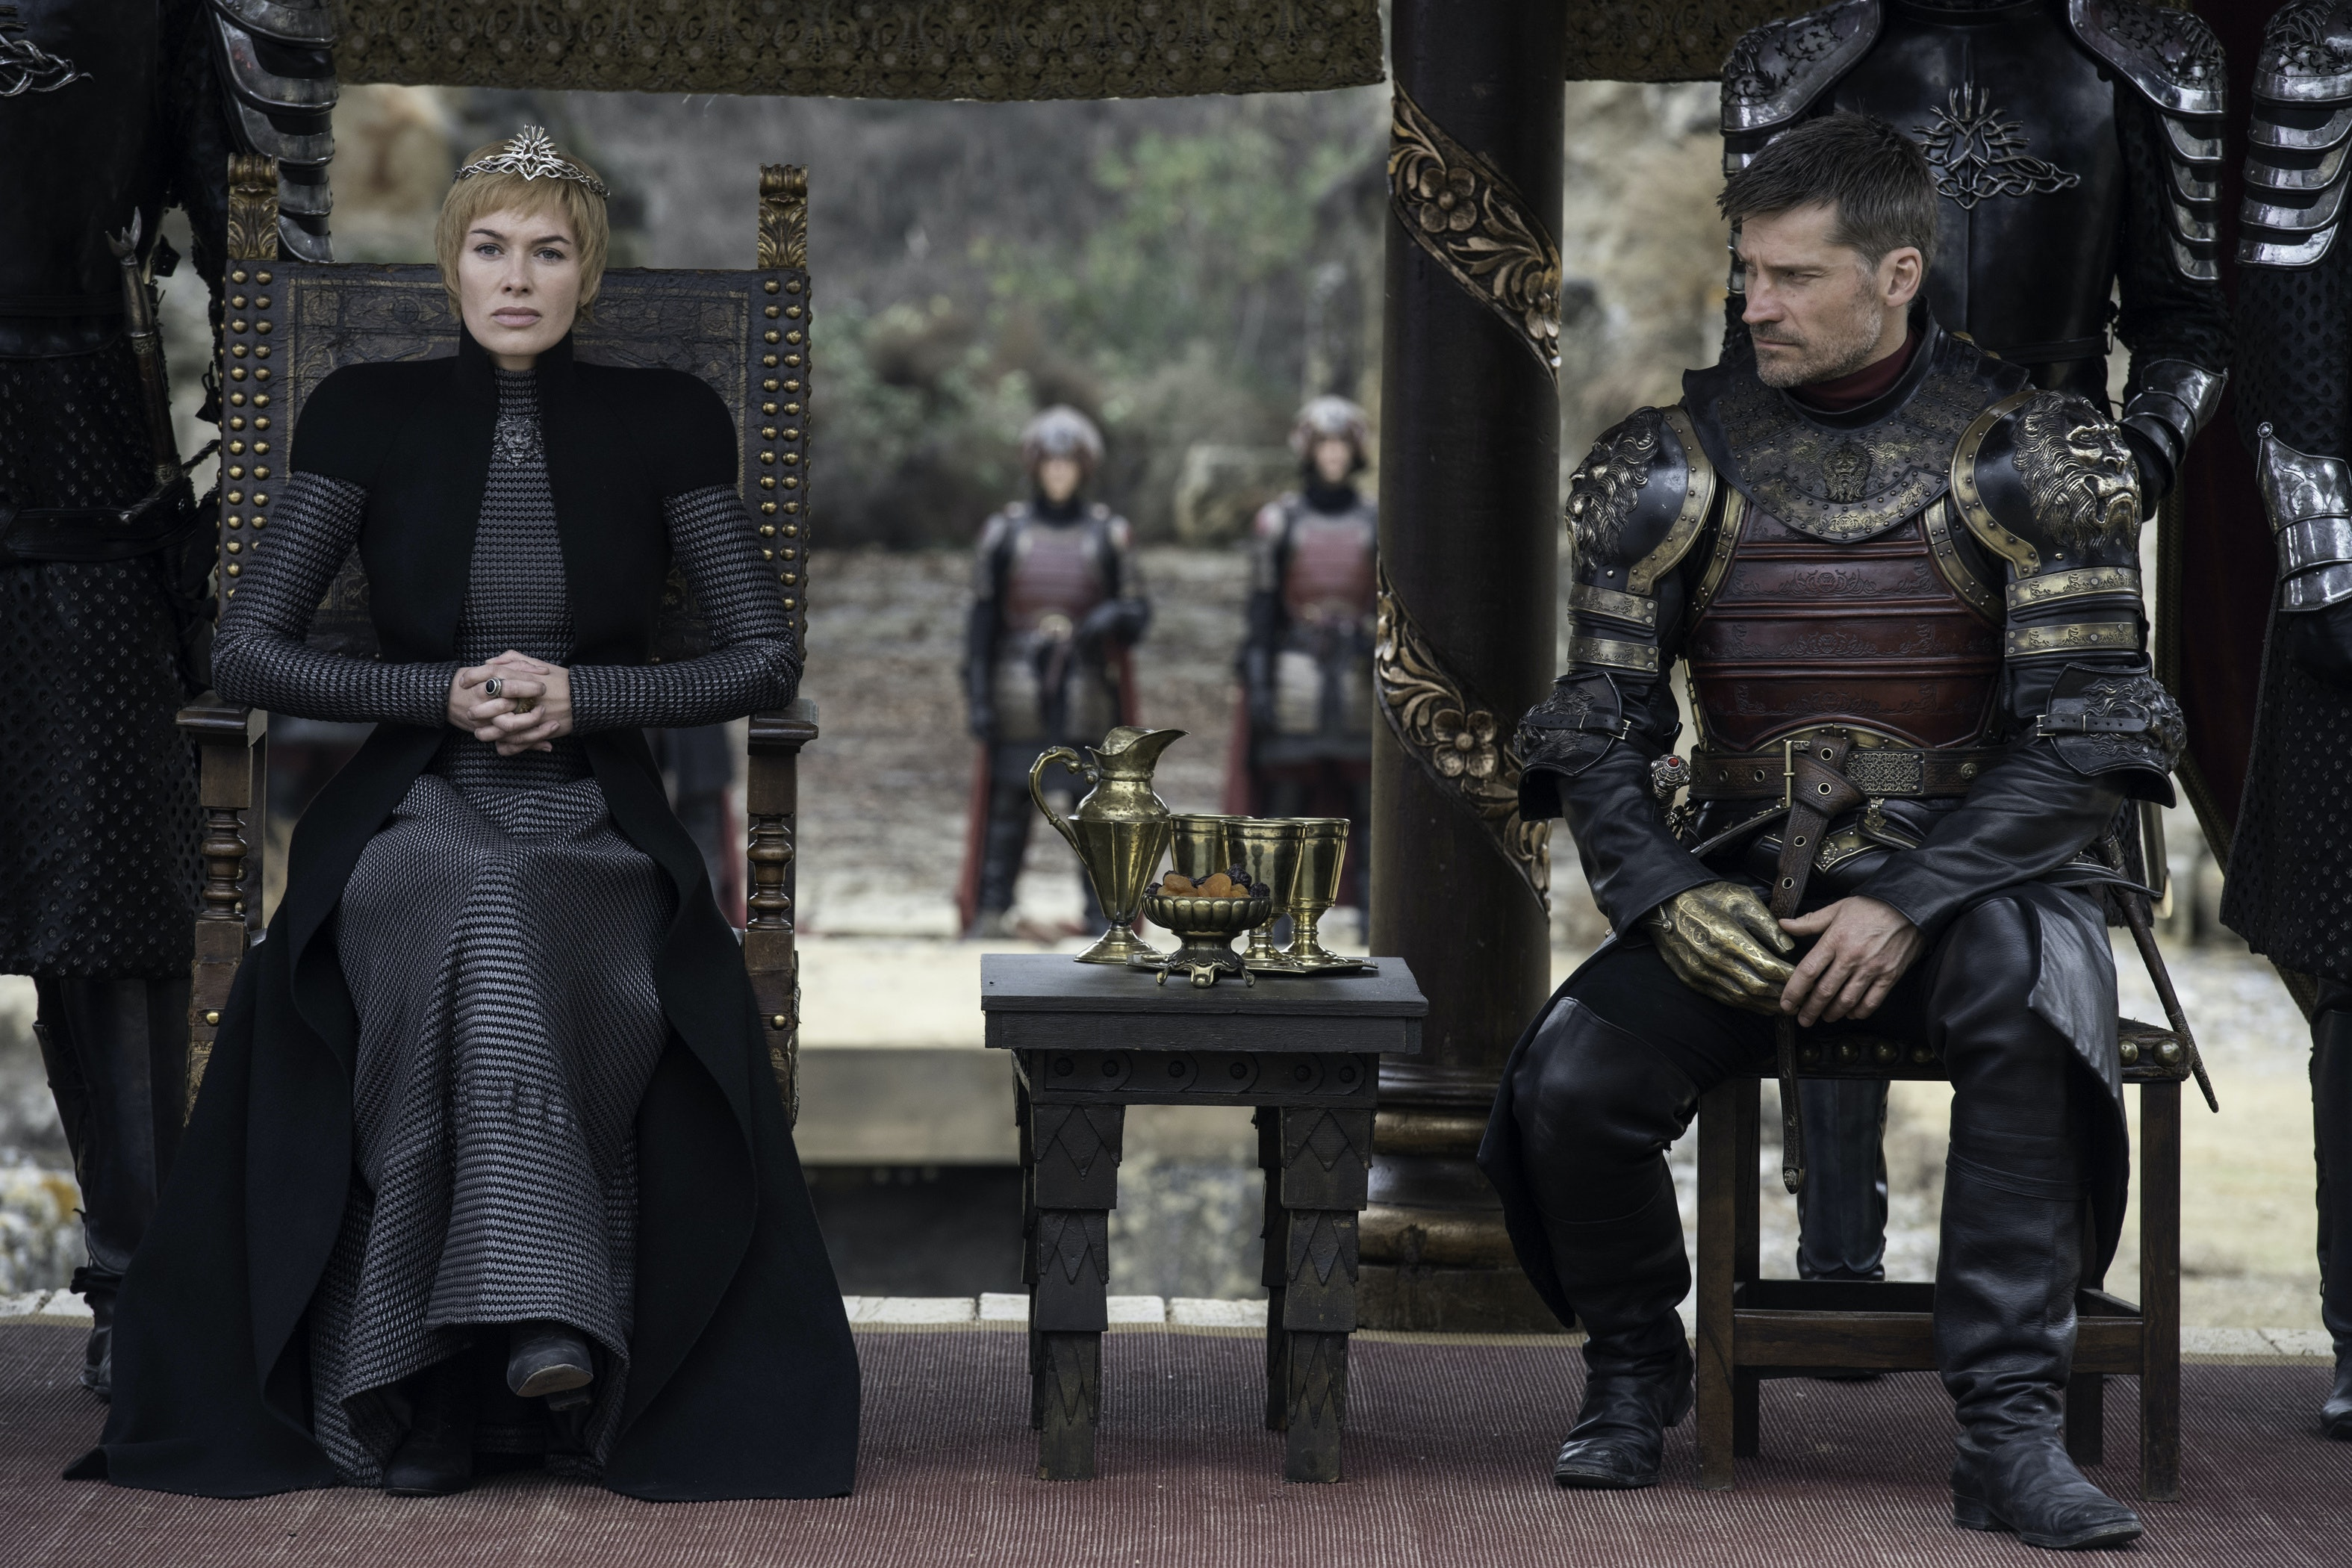 'Game of Thrones' power rankings, episode 707 'The Dragon and the Wolf'